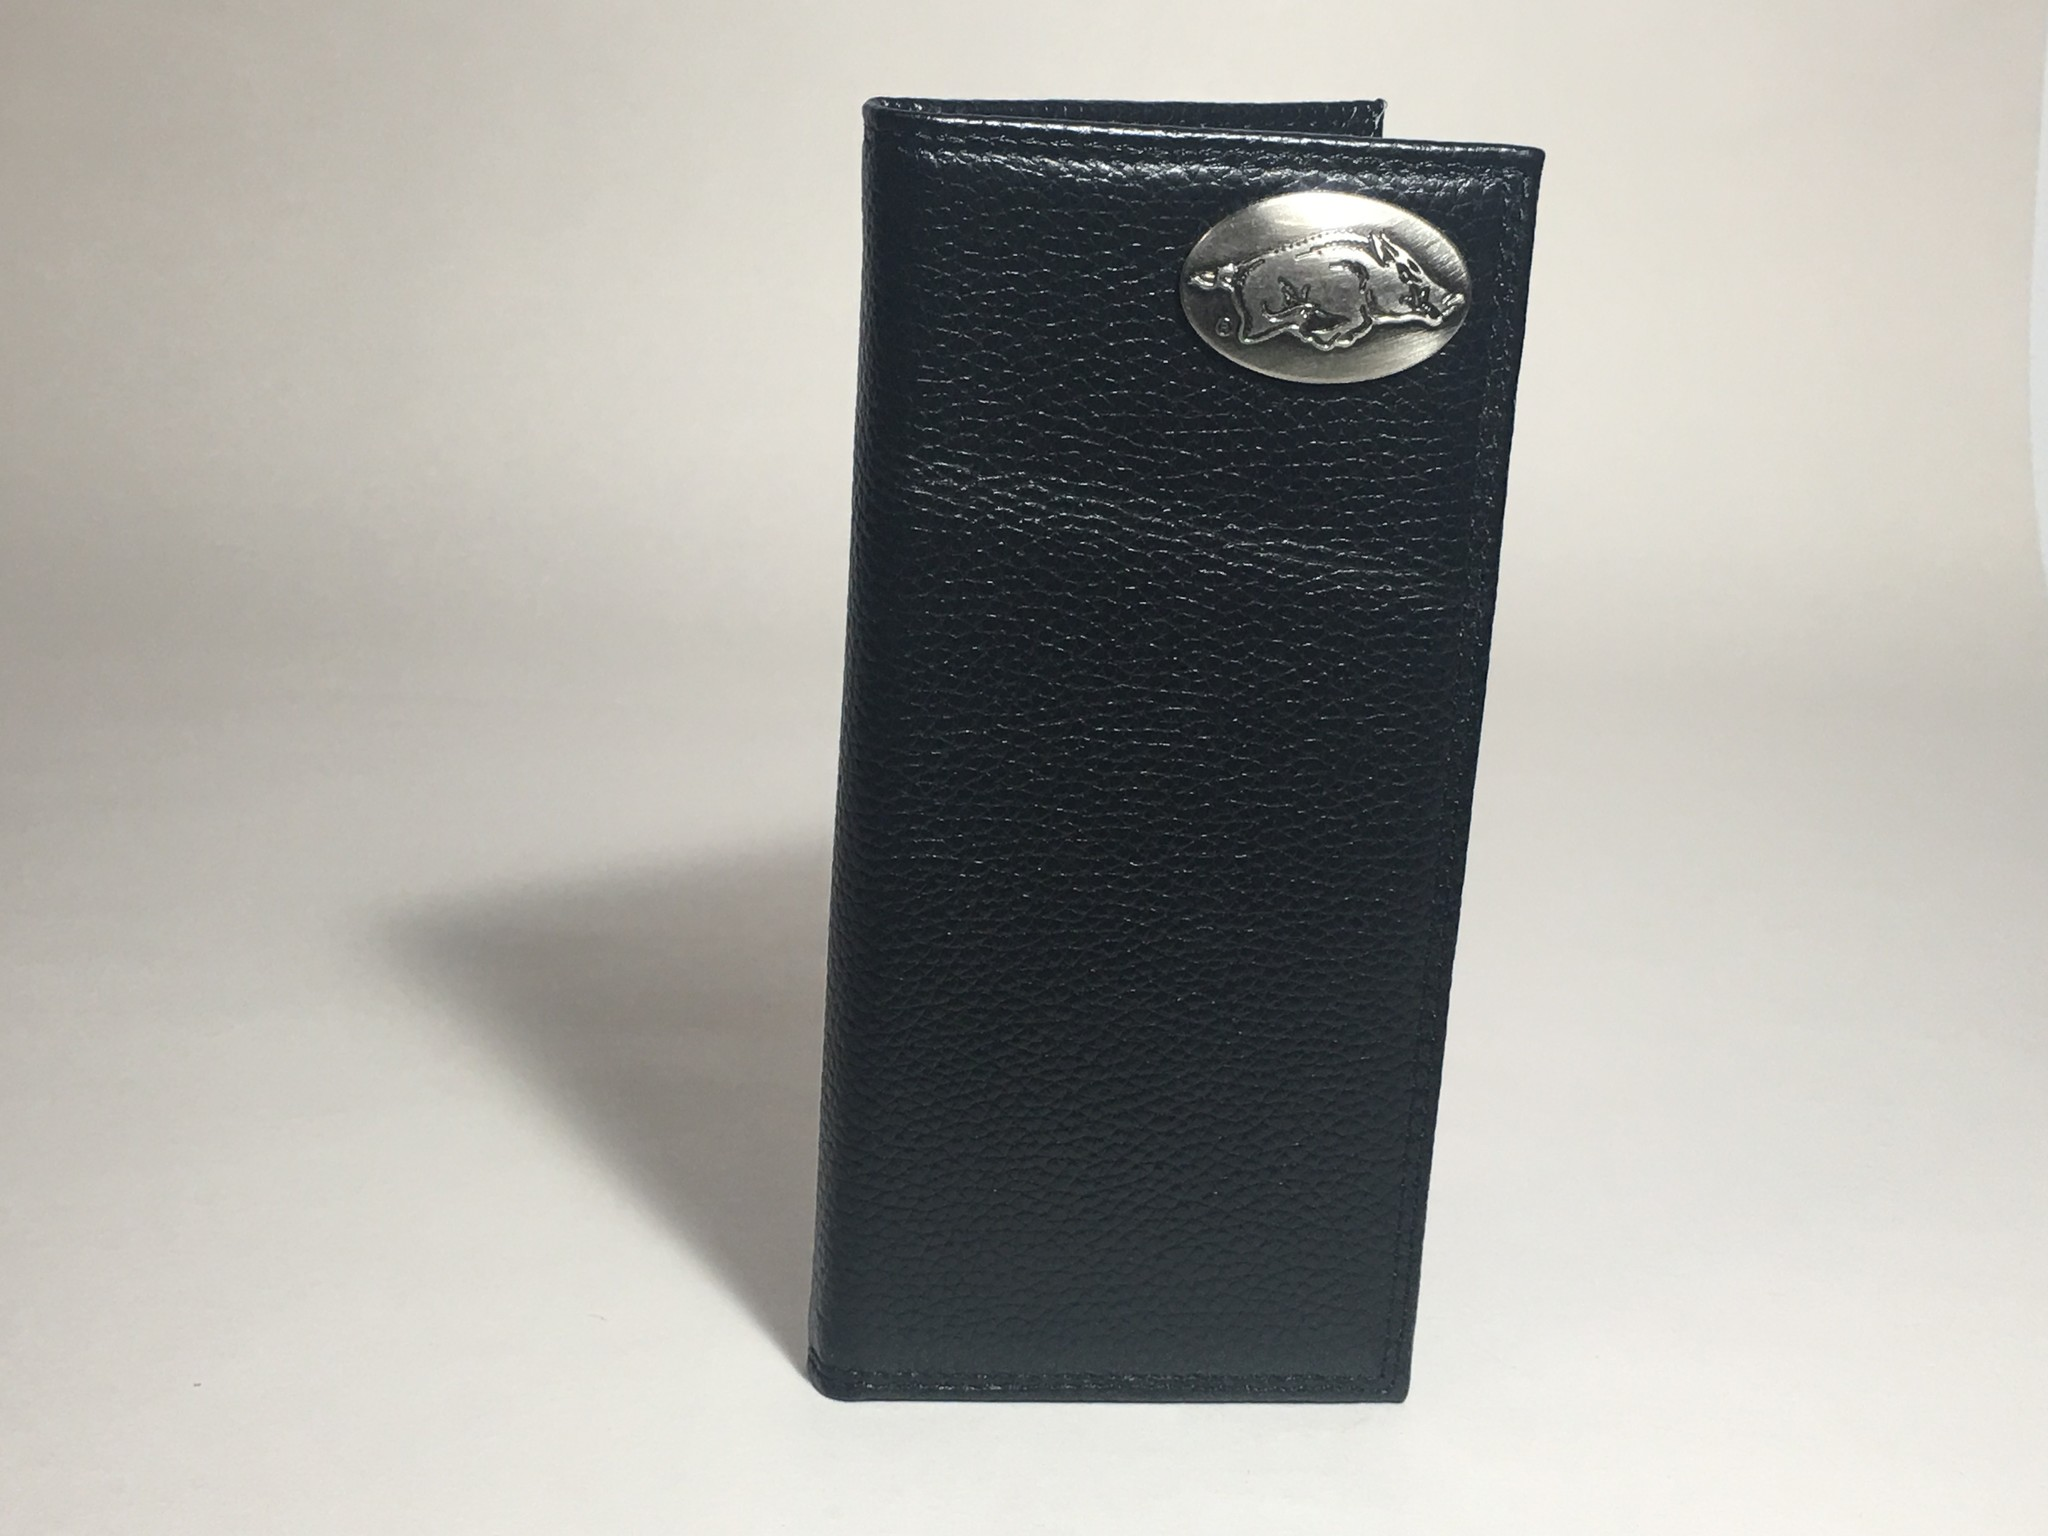 Arkansas Razorback Black Pebble Grain Concho Checkbook Wallet